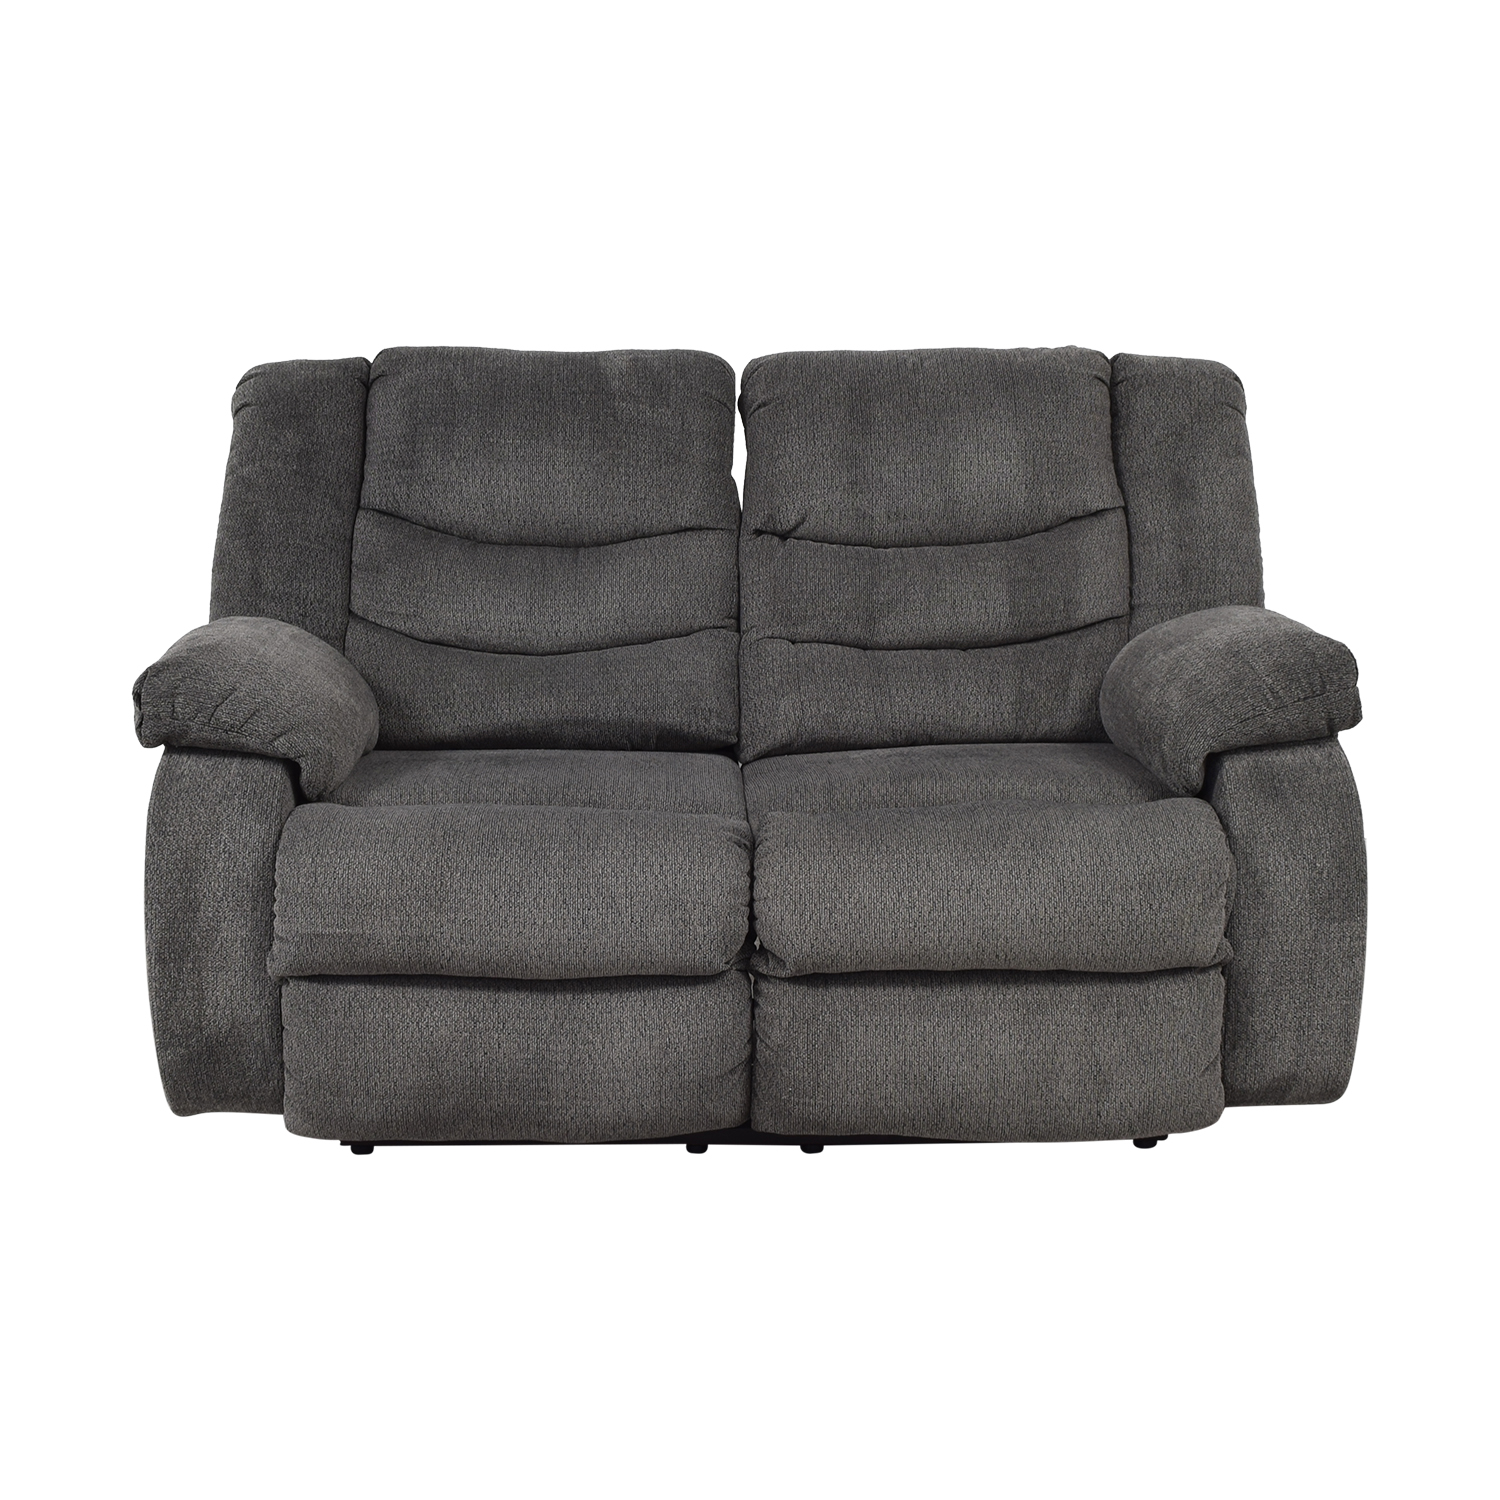 Excellent 71 Off Ashley Furniture Ashley Furniture Gray Reclining Loveseat Sofas Beutiful Home Inspiration Cosmmahrainfo